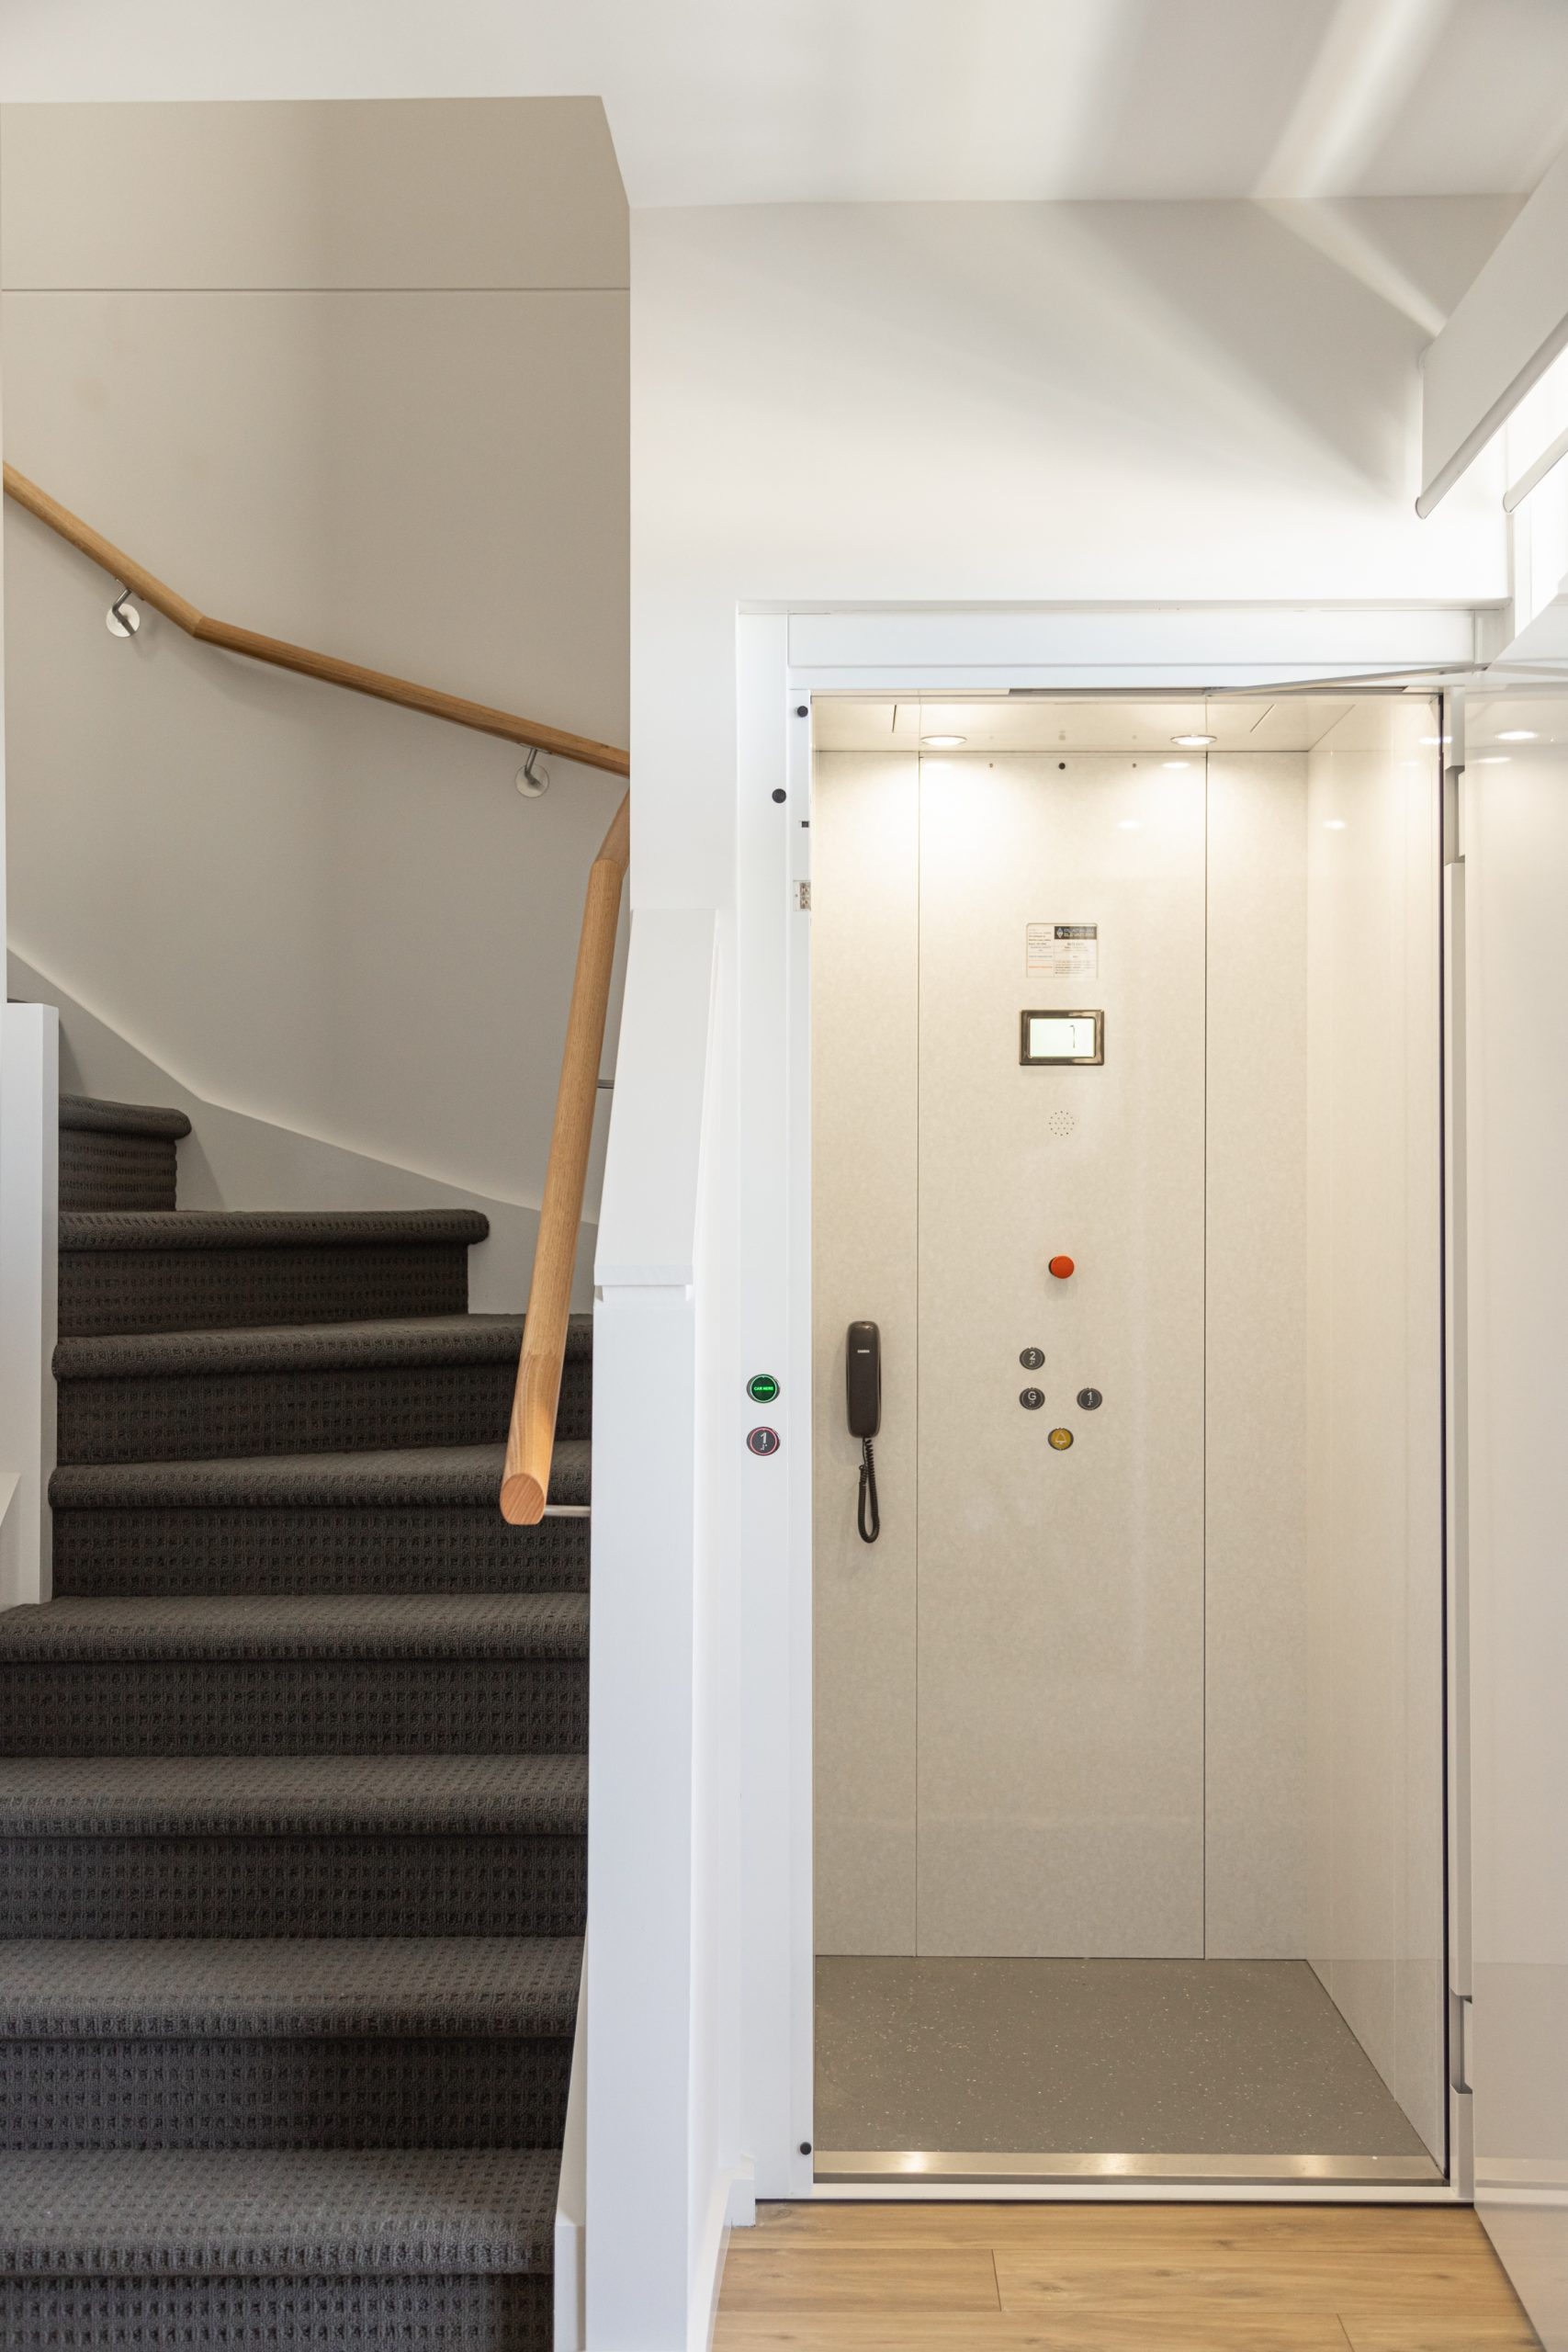 white cabin residential elevator with wooden floors next to a staircase.